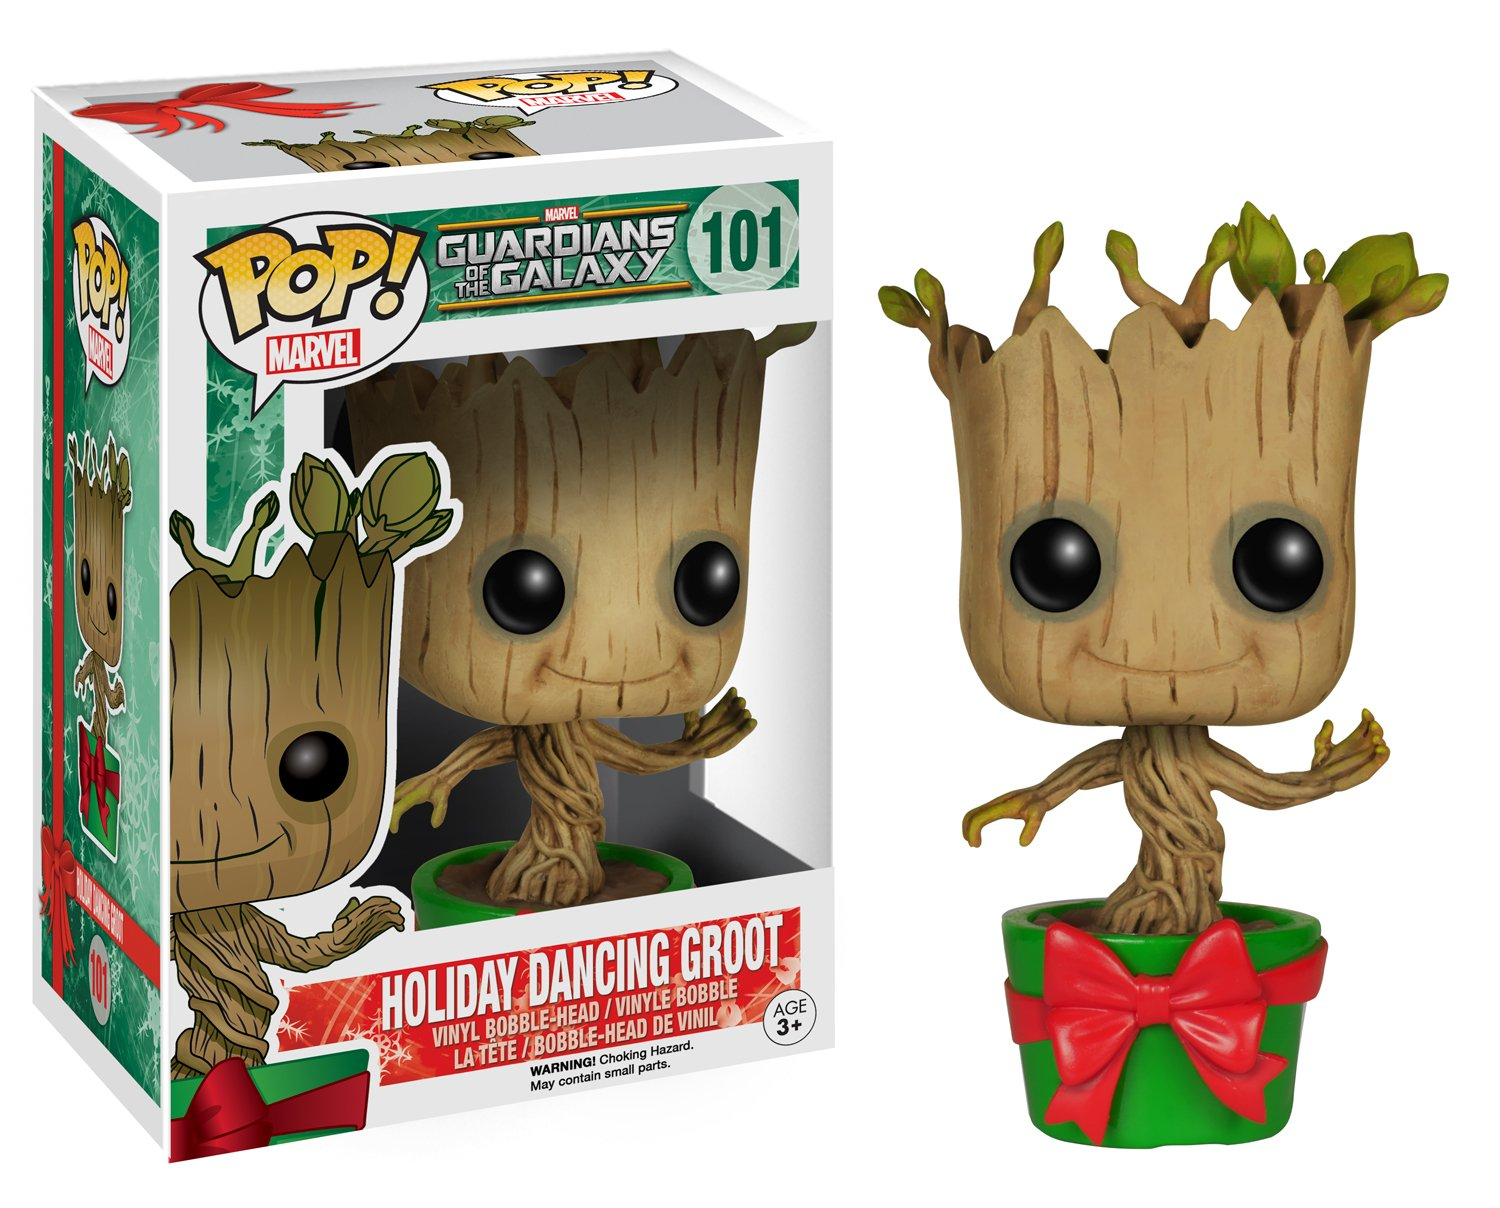 Marvel- Figura de Vinilo Holiday Dancing Groot, colección Guardians of The Galaxy (Funko 6196)